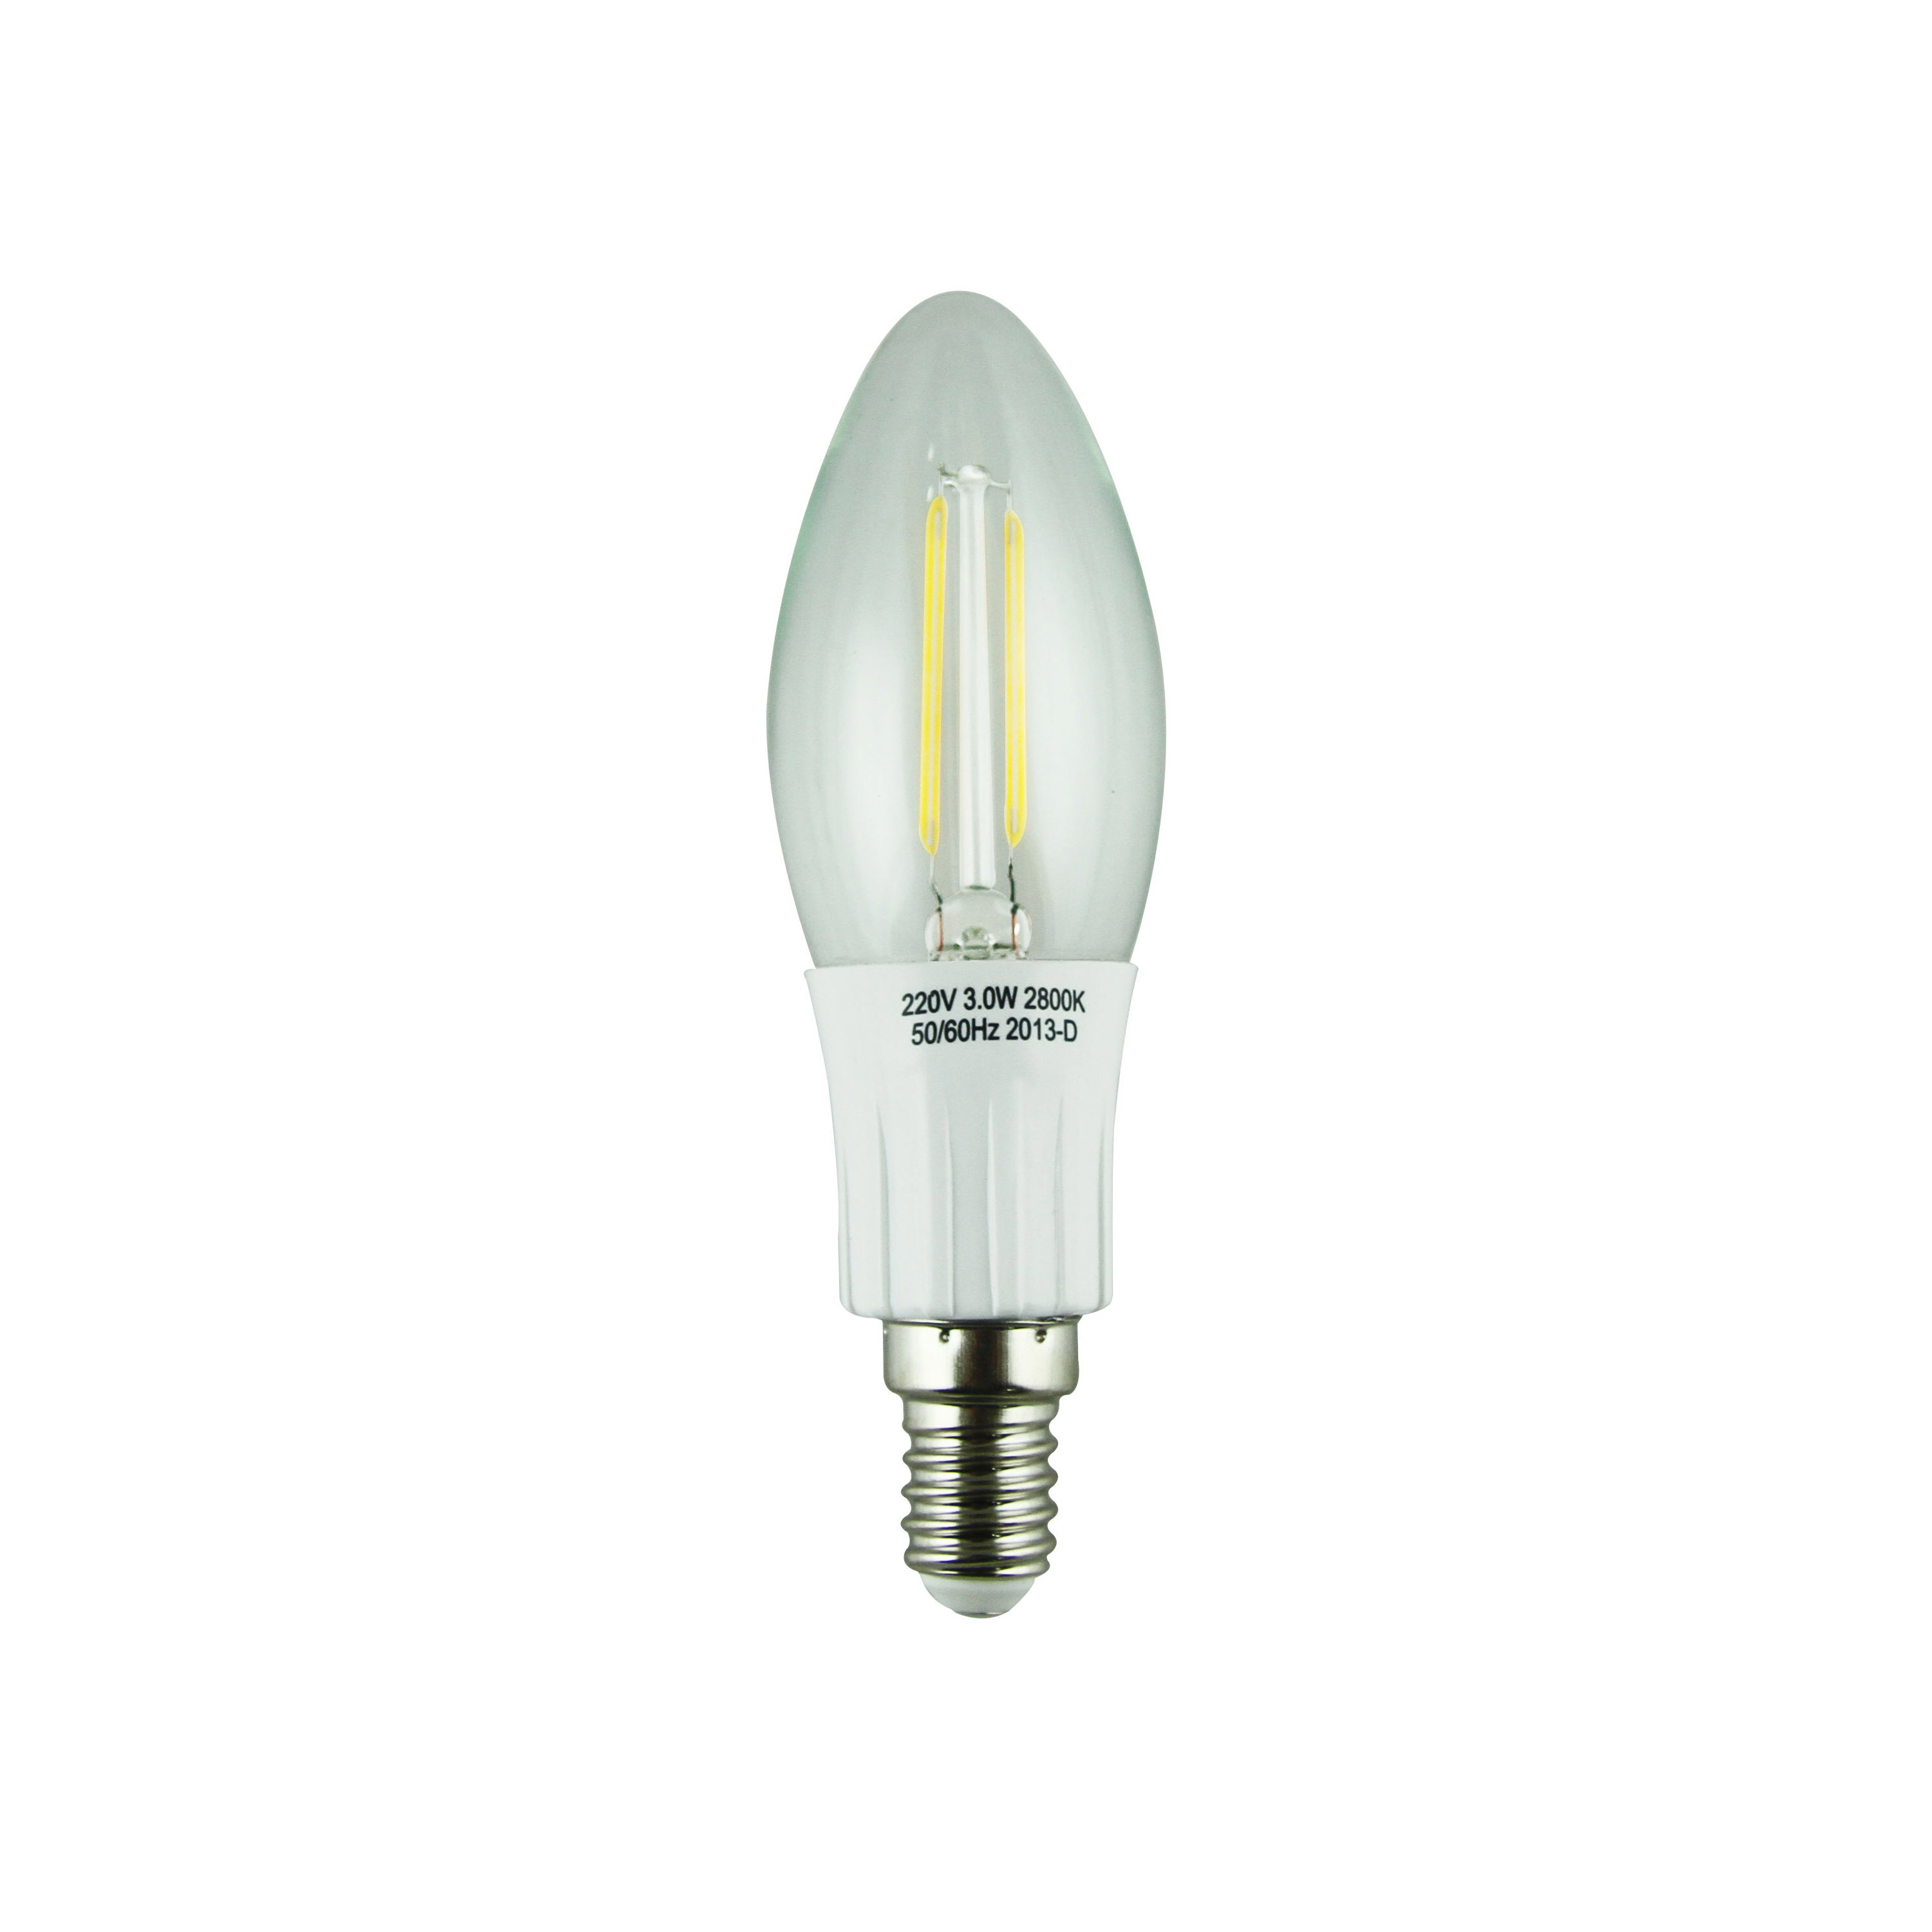 LED Filament Lamp 360°Candle Bulb E14 3W AC110V/220V 300-330lm Warm White/White